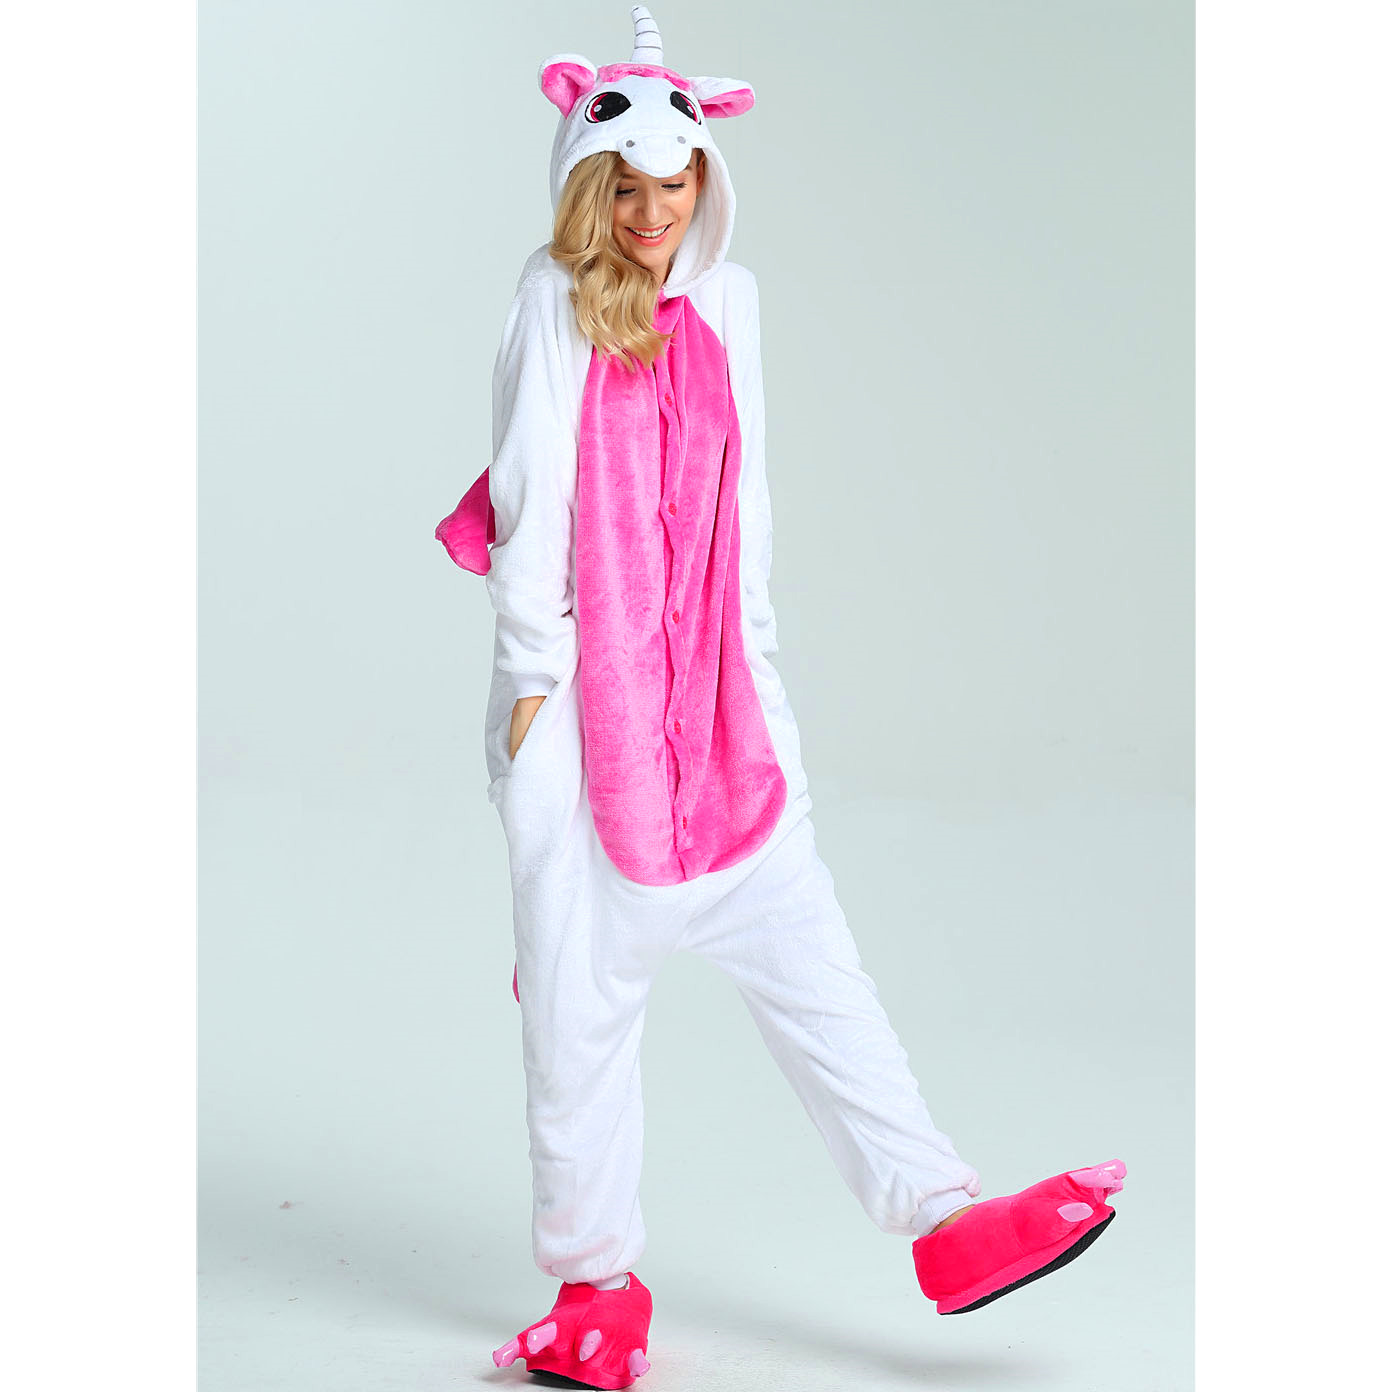 Image 5 - Women Kigurumi Unicorn Pajamas Sets Flannel Cute Animal Pajamas kids Women Winter unicornio Nightie Pyjamas Sleepwear Homewear-in Pajama Sets from Underwear & Sleepwears